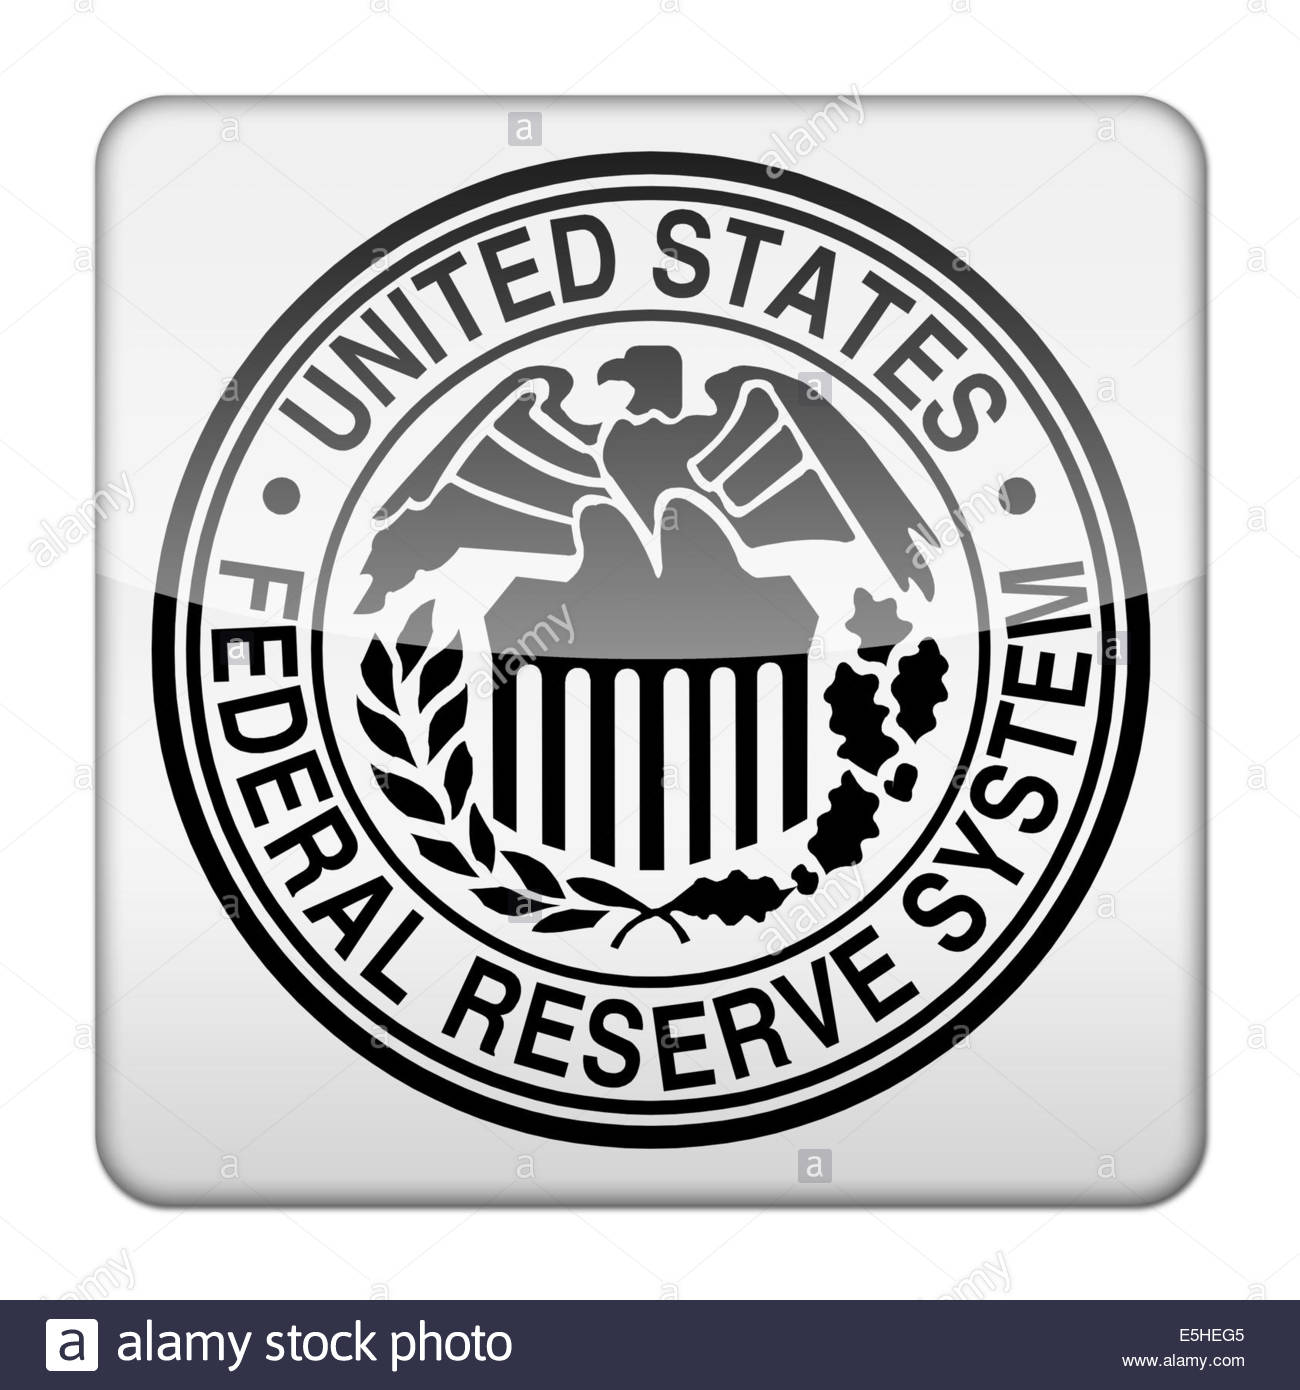 Federal Reserve System Icon Logo Isolated App Button Stock Photo